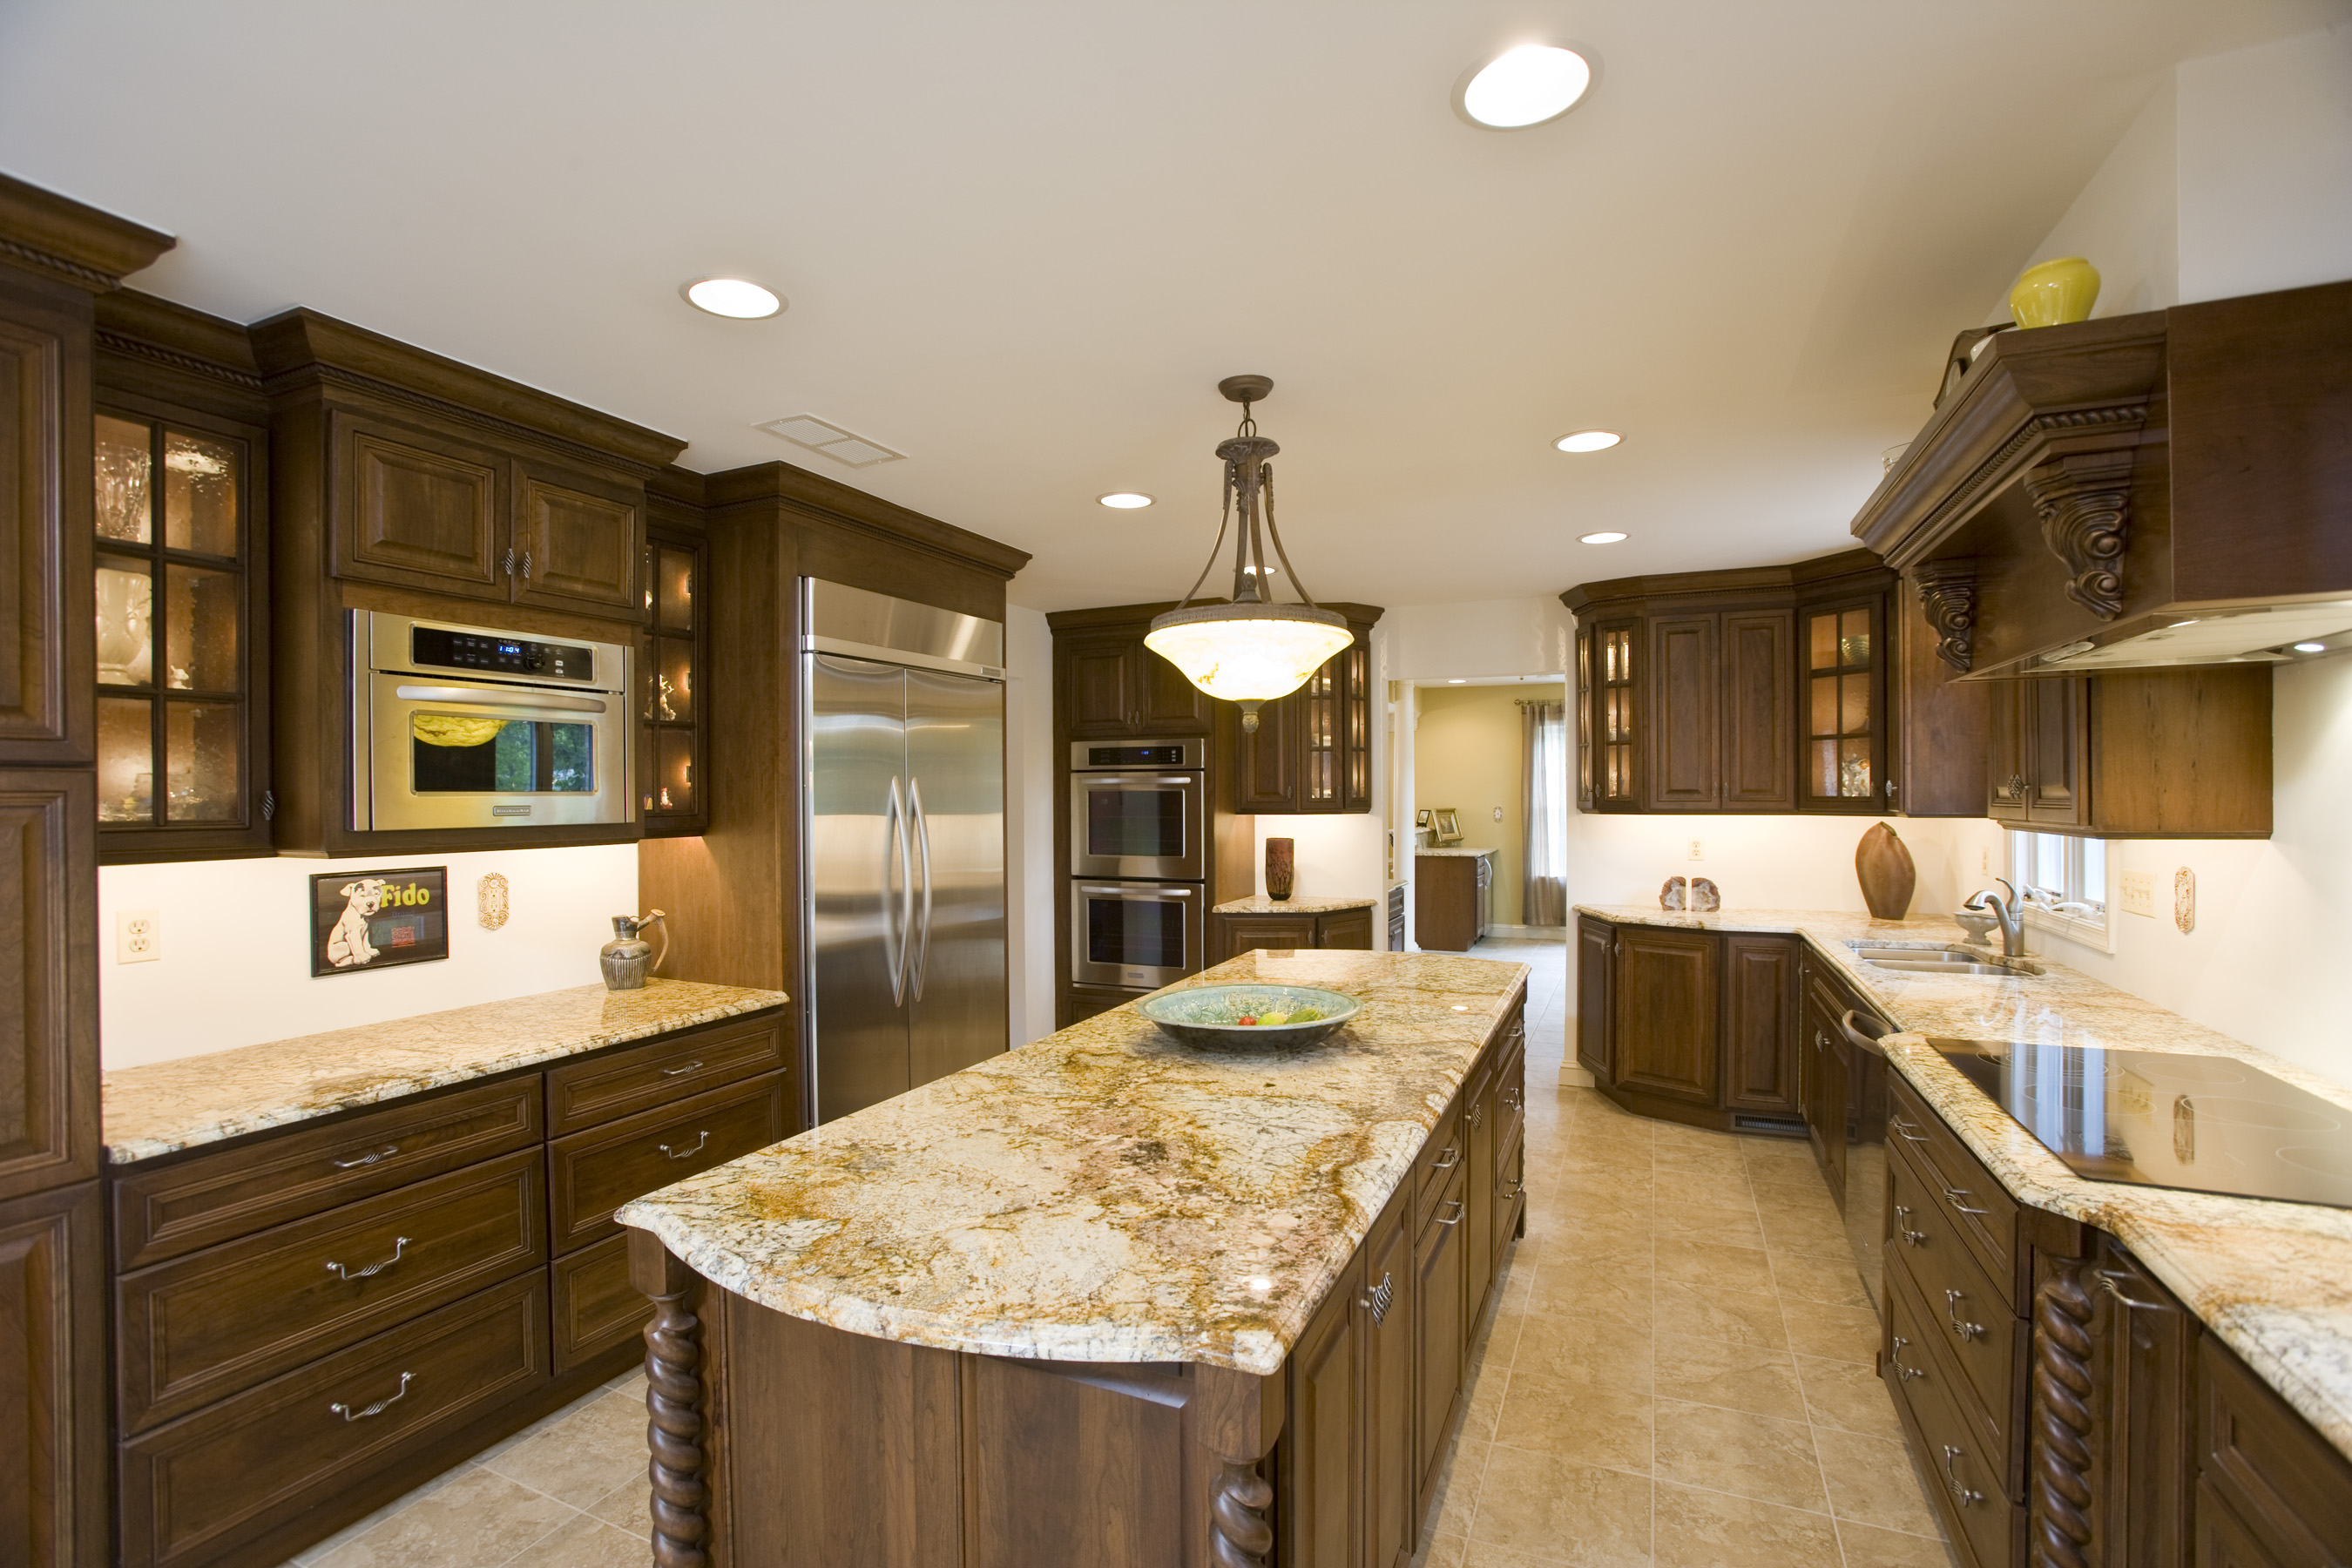 Top Quality Granite Kitchen Countertops Goodworksfurniture Rh  Goodworksfurniture Com Granite Kitchen Countertops Near Me Granite Kitchen